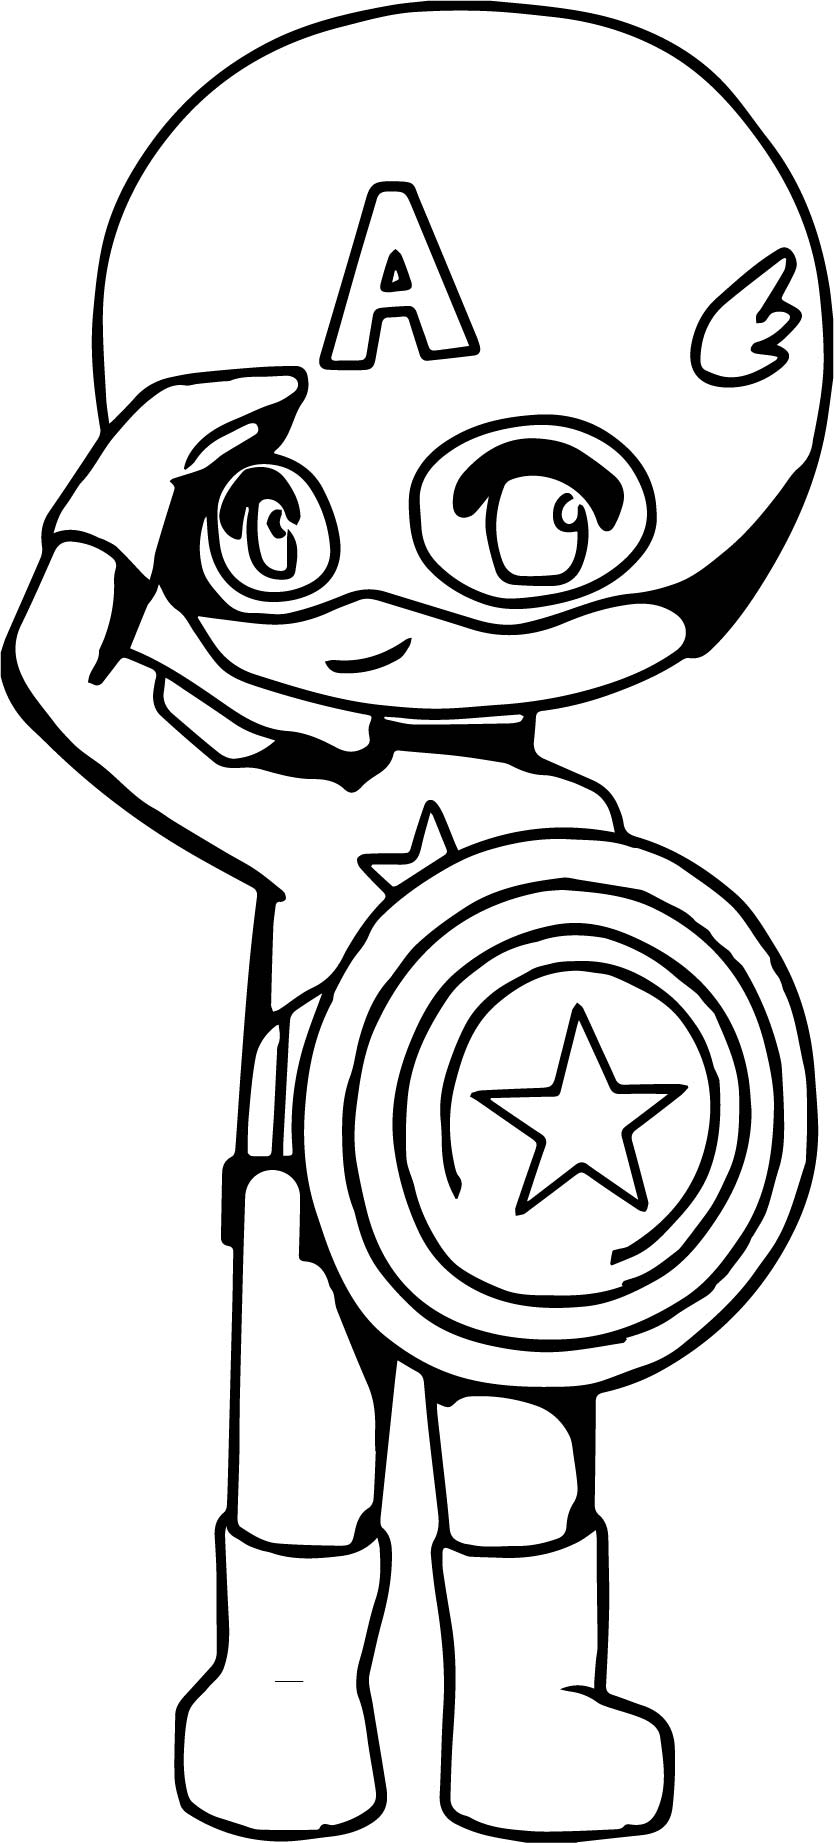 baby captain america coloring pages - photo#6